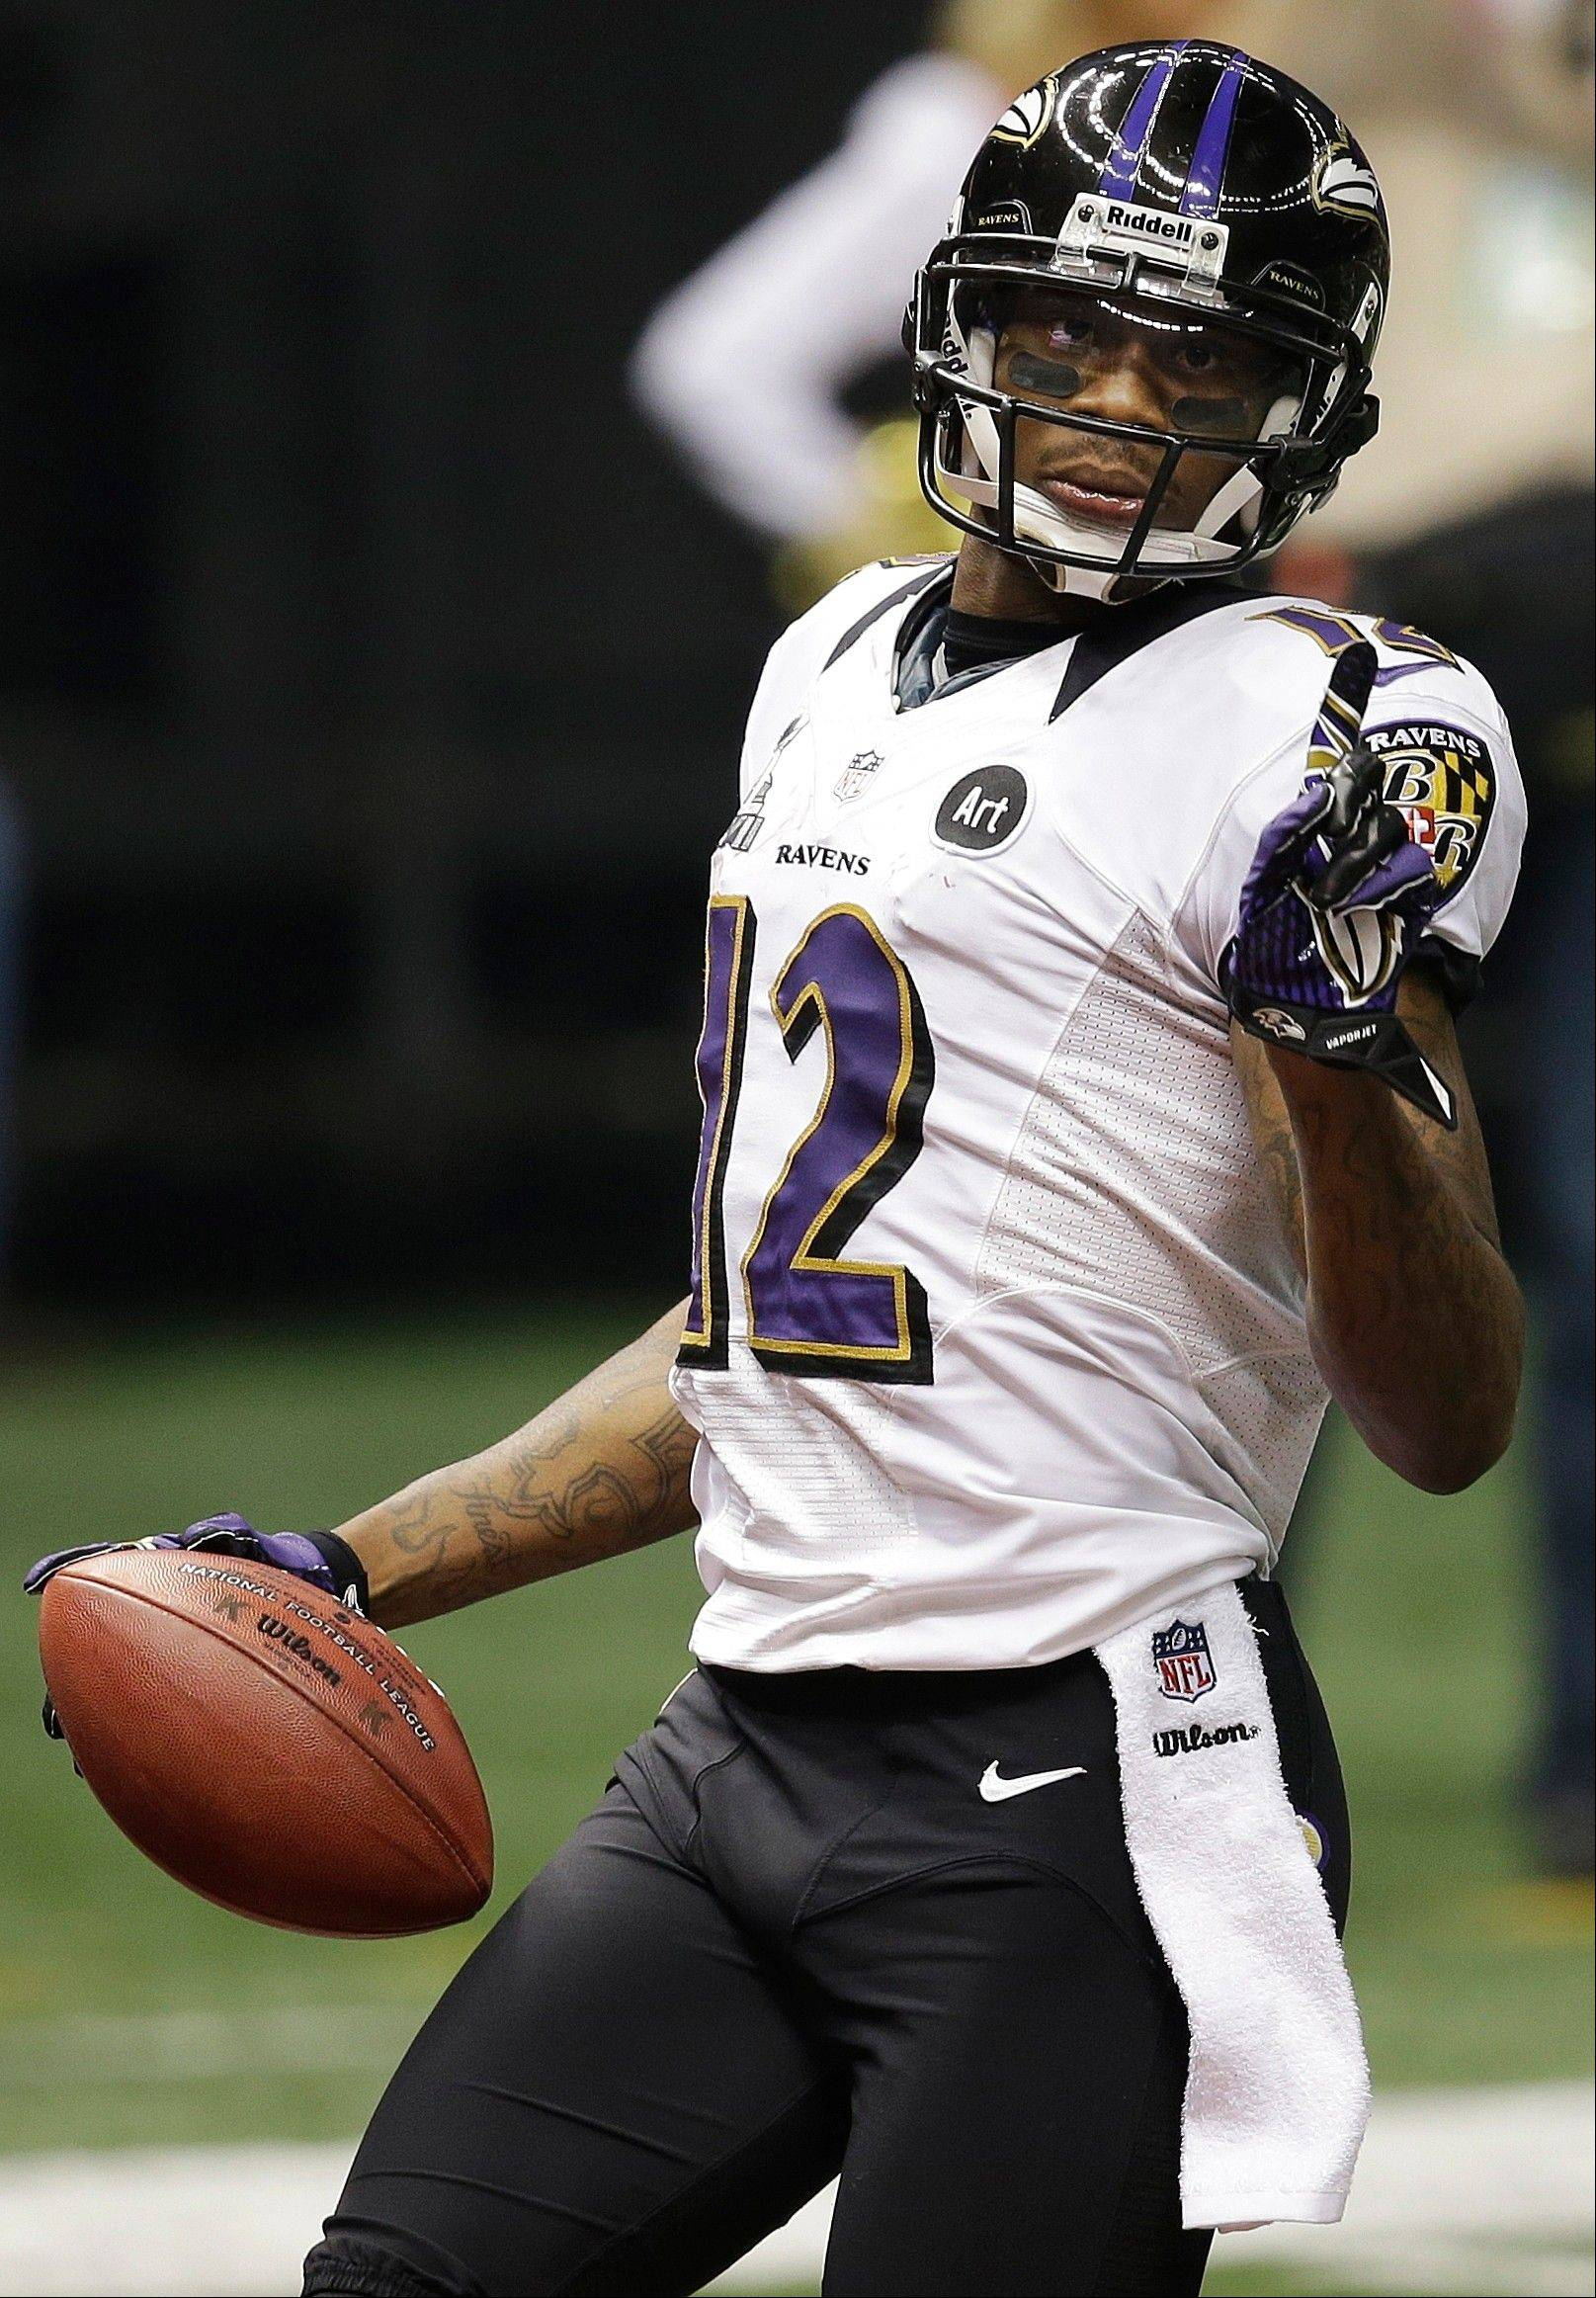 Baltimore Ravens wide receiver Jacoby Jones (12) gestures after returning a kickoff for a 109-yard touchdown against the San Francisco 49ers during the second half.